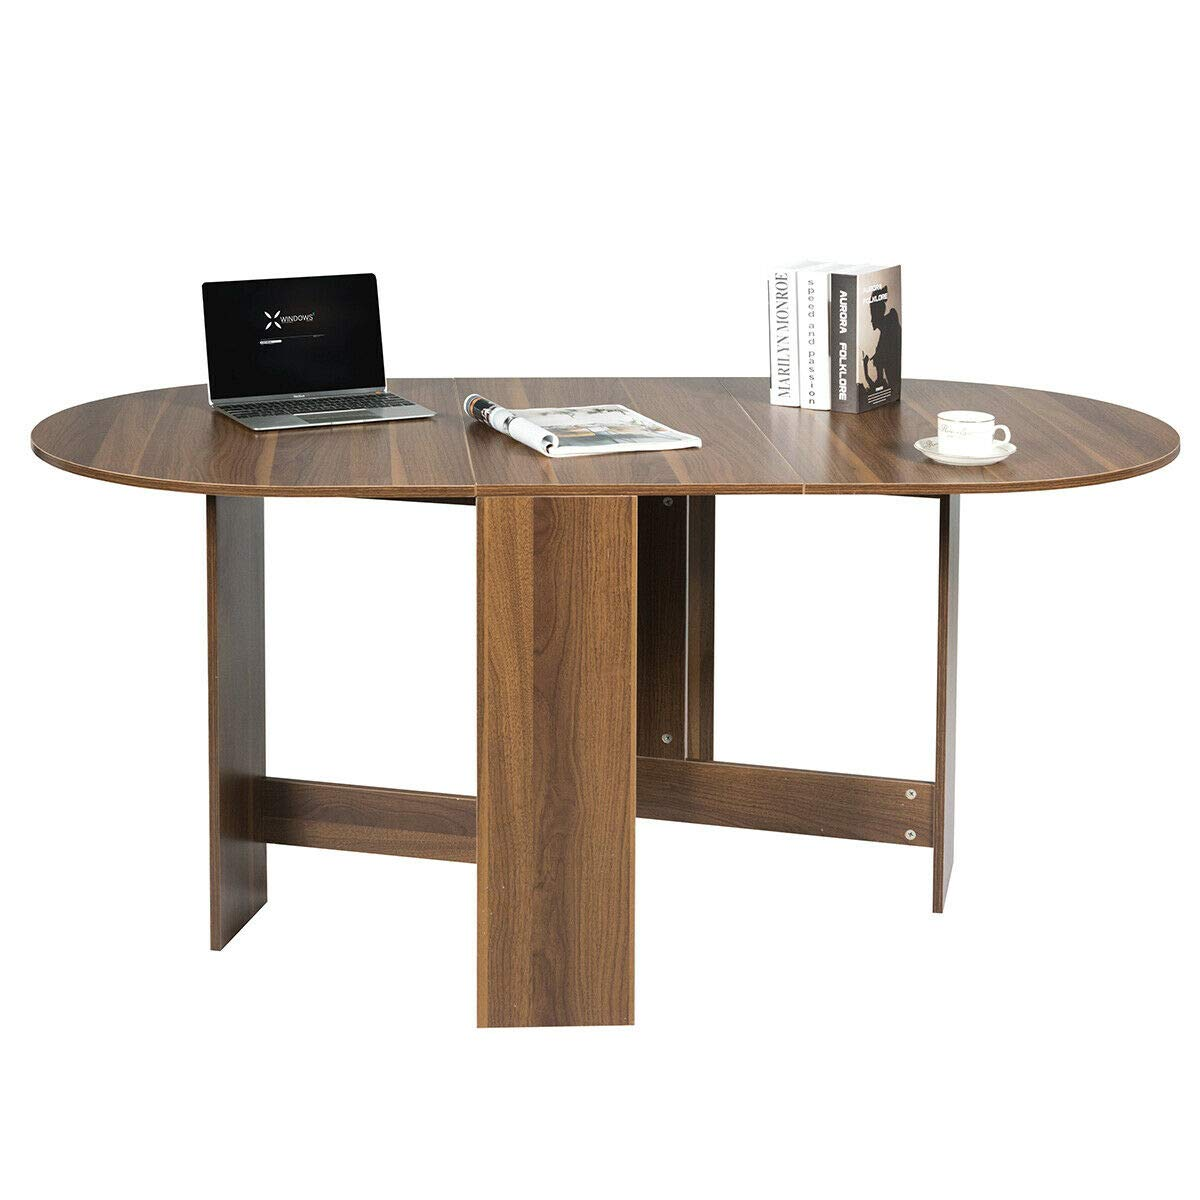 Giantex Folding Dining Table, Drop Leaf Extendable Multifunction Table with Humanized Round Edges, Space Saver for Dining Room Kitchen Home Compact ...